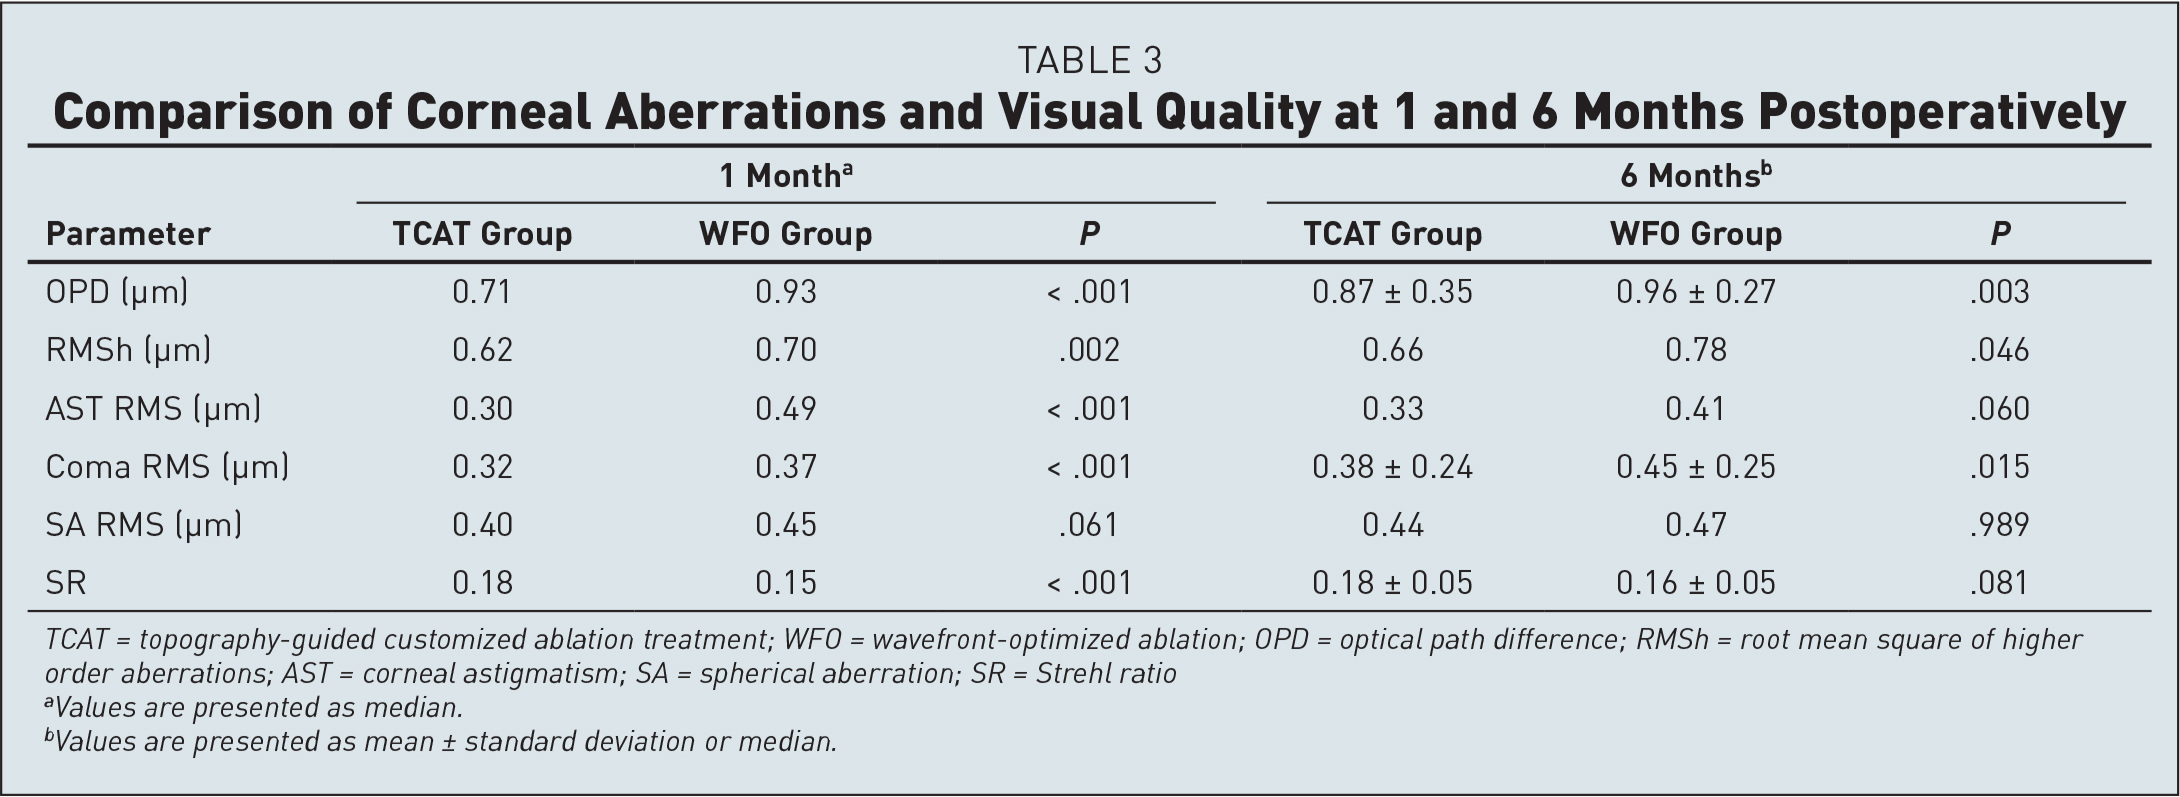 Comparison of Corneal Aberrations and Visual Quality at 1 and 6 Months Postoperatively